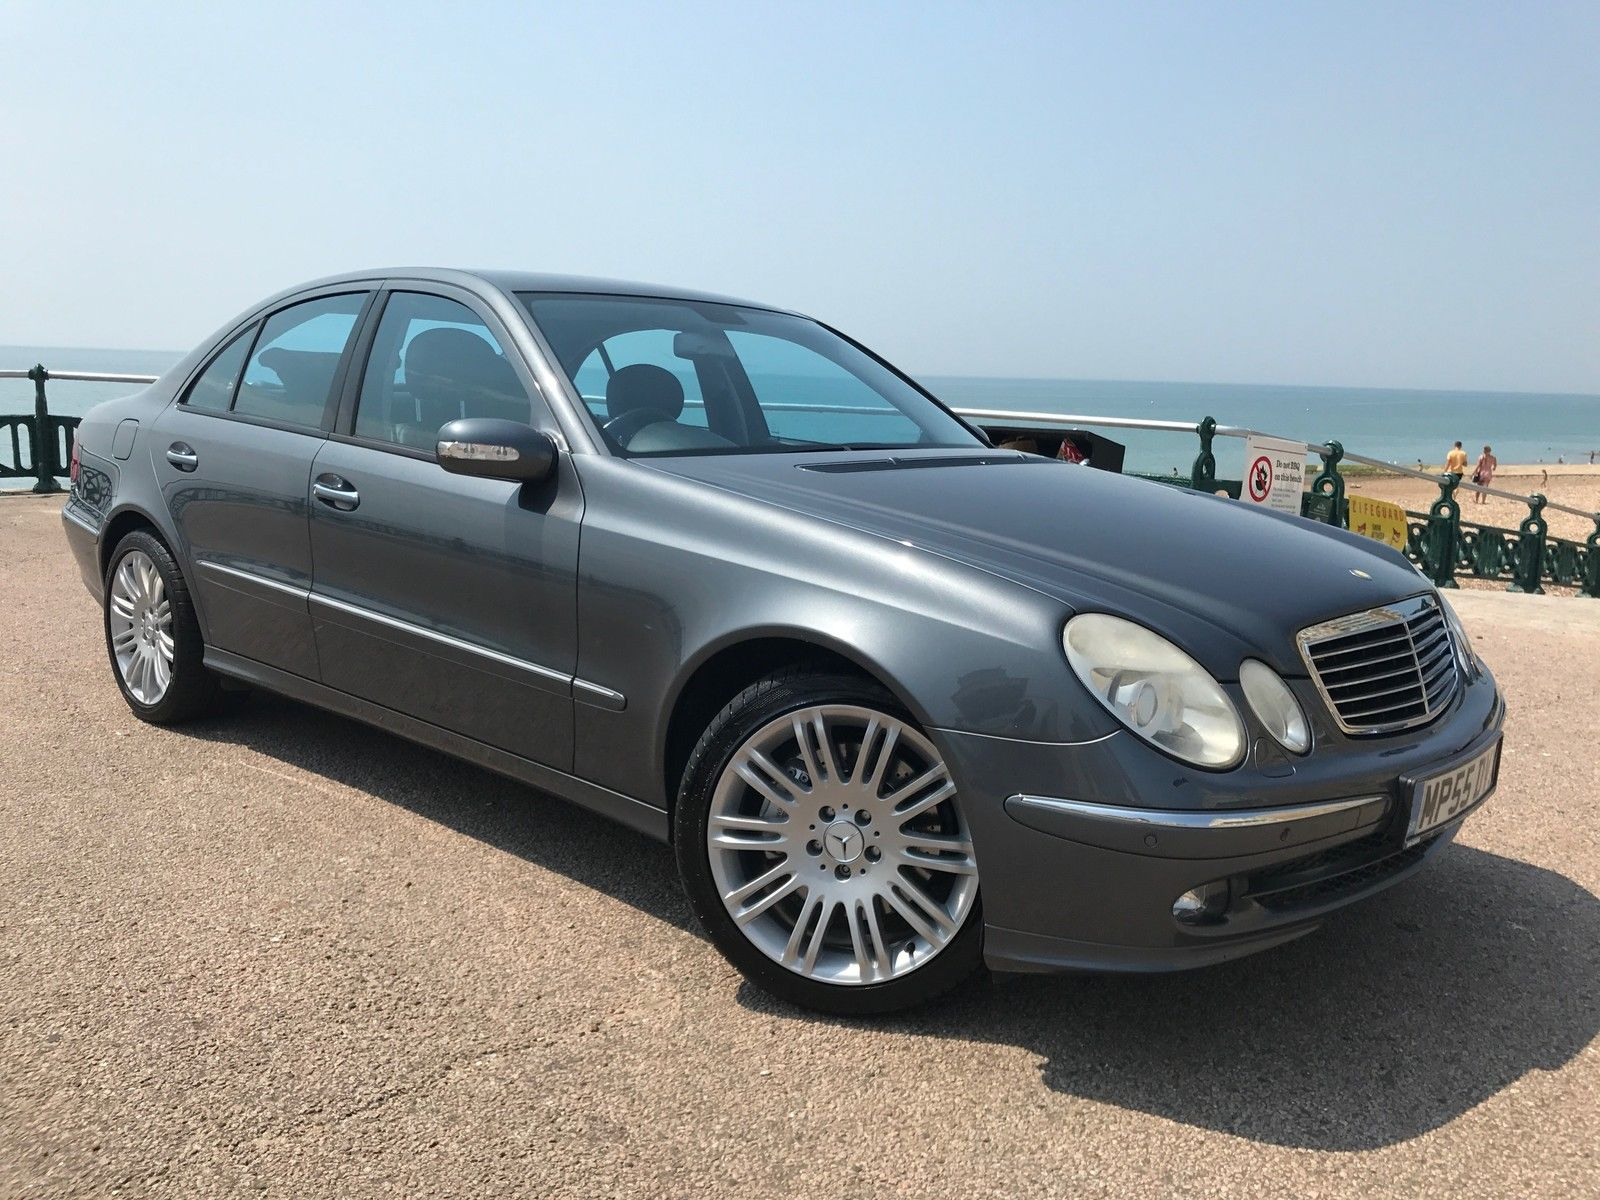 2005 mercedes benz e320 cdi sport 1 front m cars for 2005 e320 mercedes benz